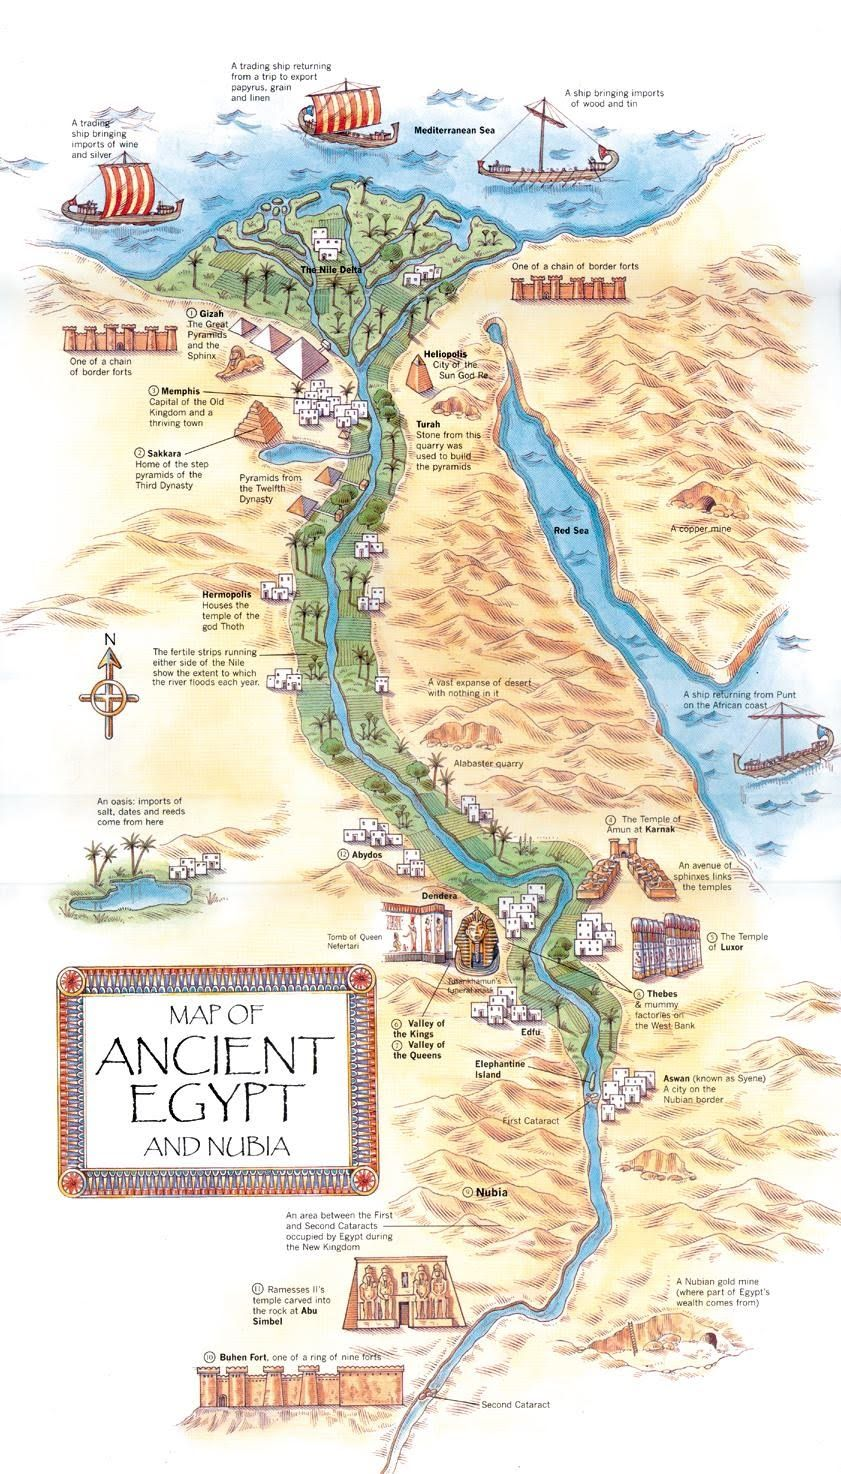 Map of important features and landmarks in Ancient Egypt ...